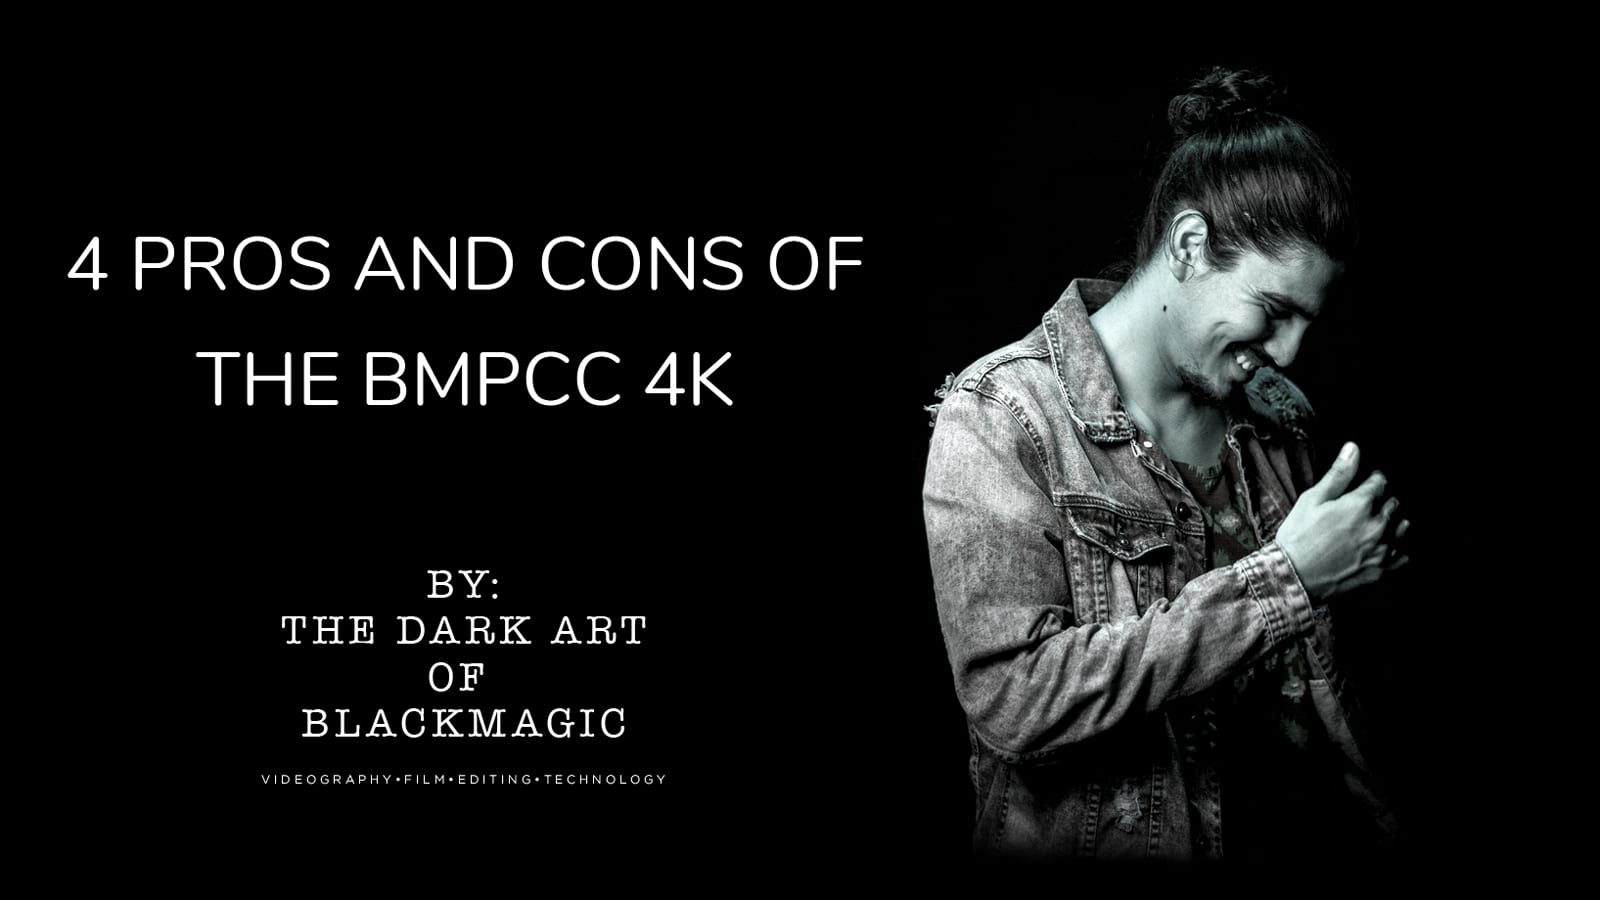 4-pros-and-cons-video-header-the-dark-art-of-blackmagic